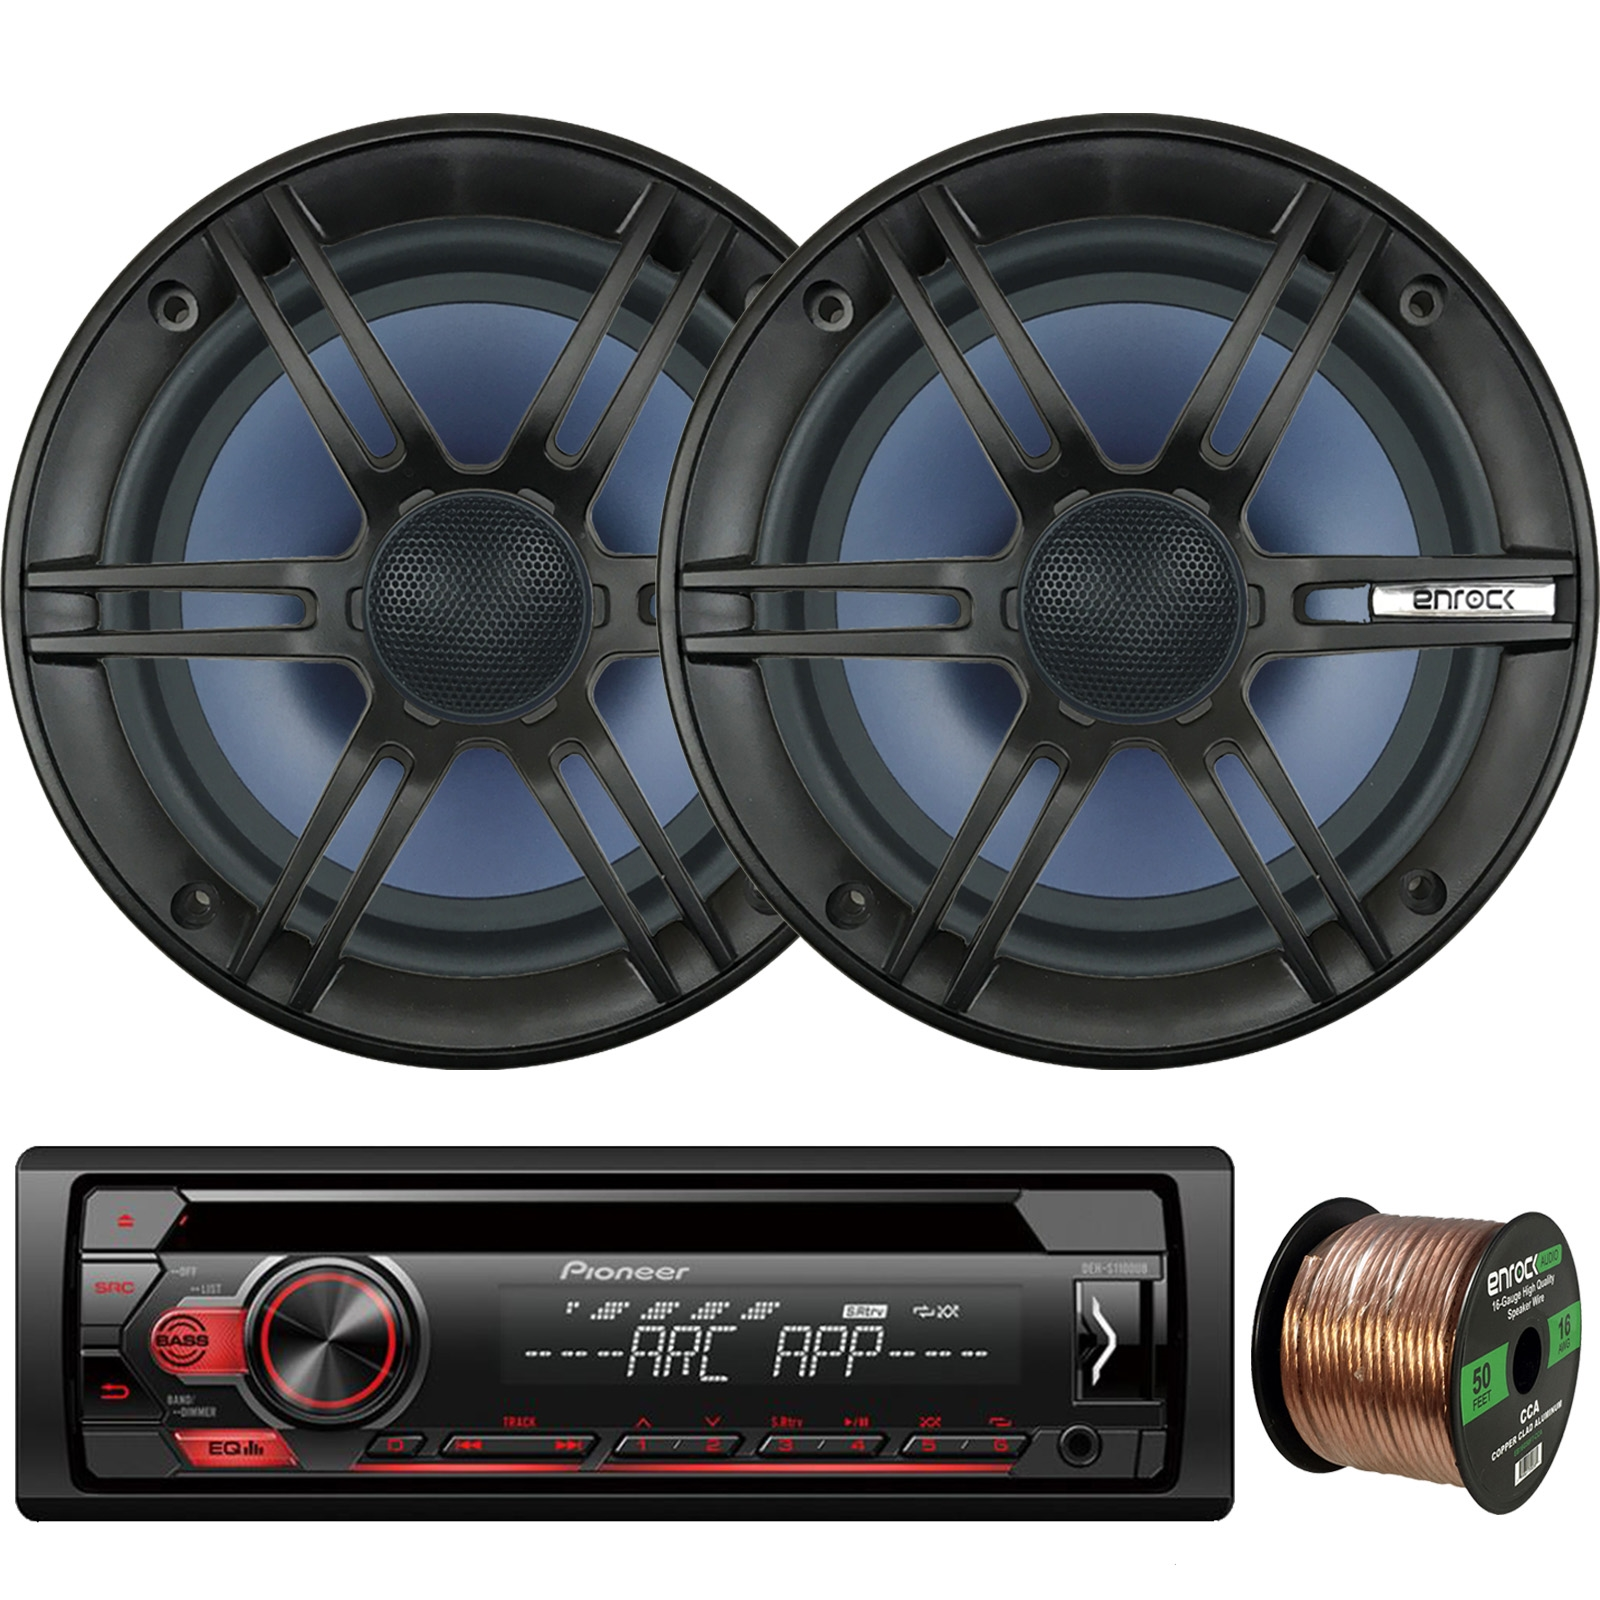 """Pioneer DEH-S1100UB Single-DIN CD Player AM/FM Car Stereo Receiver, 2 x Enrock Audio 6.5"""" 2-Way Marine-Grade Coaxial Car/Boat Audio Stereo Speakers, 16-Gauge 50Ft. Speaker Wire"""